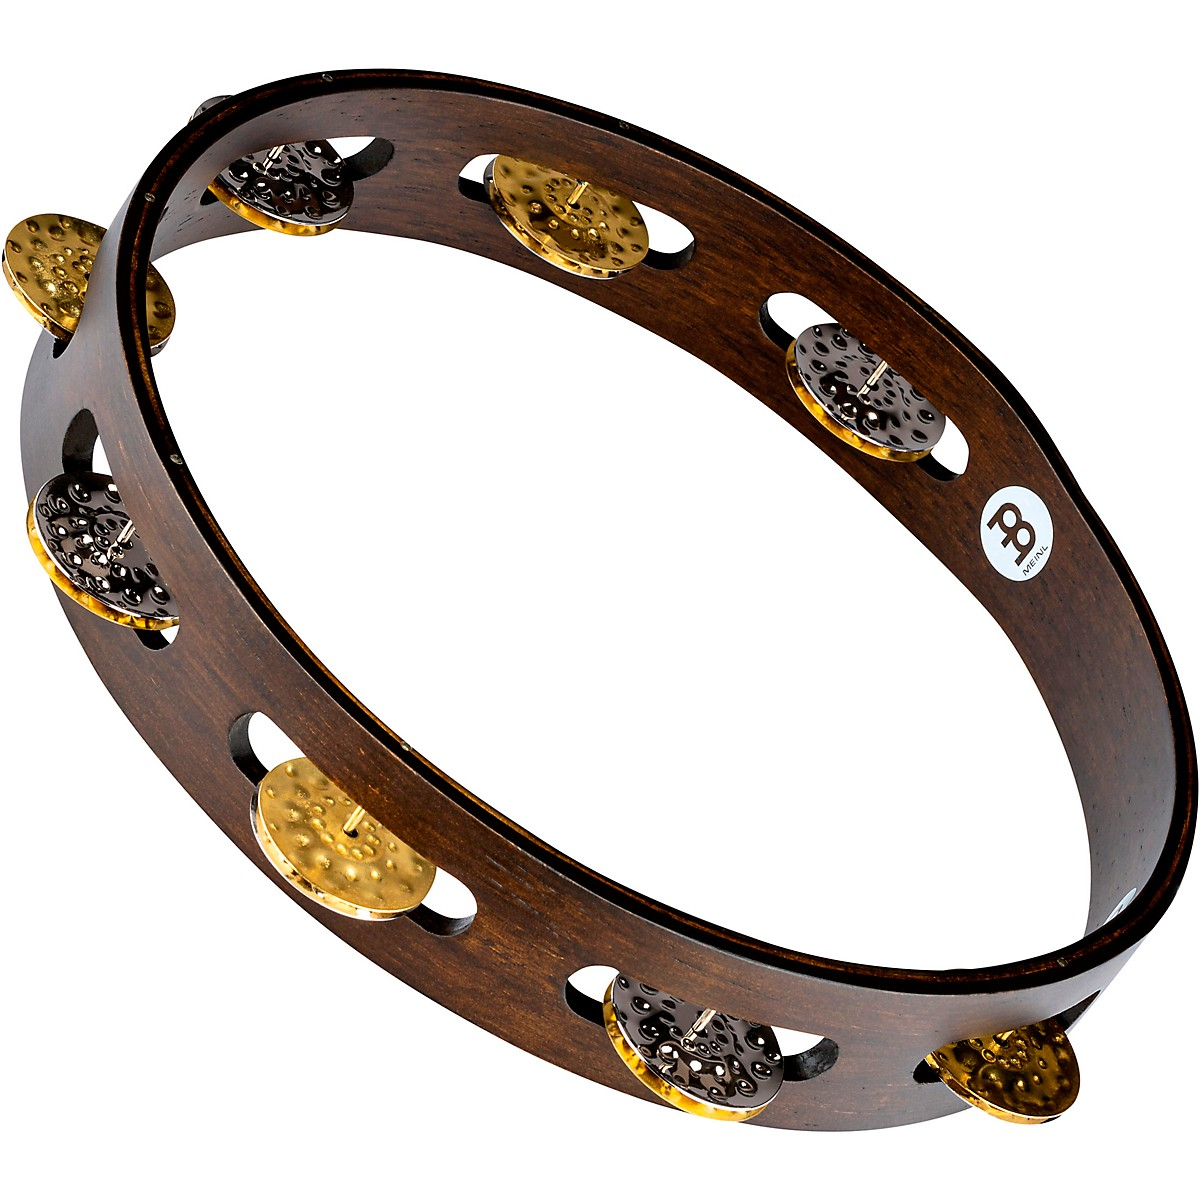 Meinl Vintage Wood Tambourine with Dual Alloy Jingles